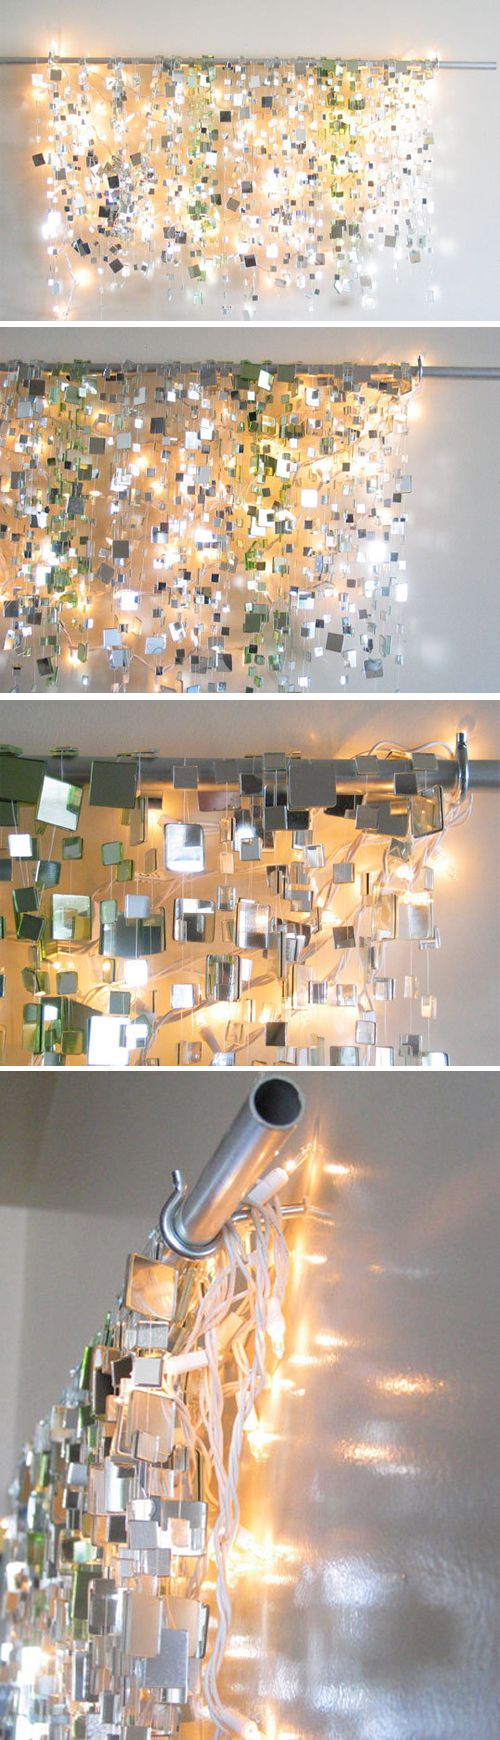 Small mirrored tiles glued to fishing line with lights behind.